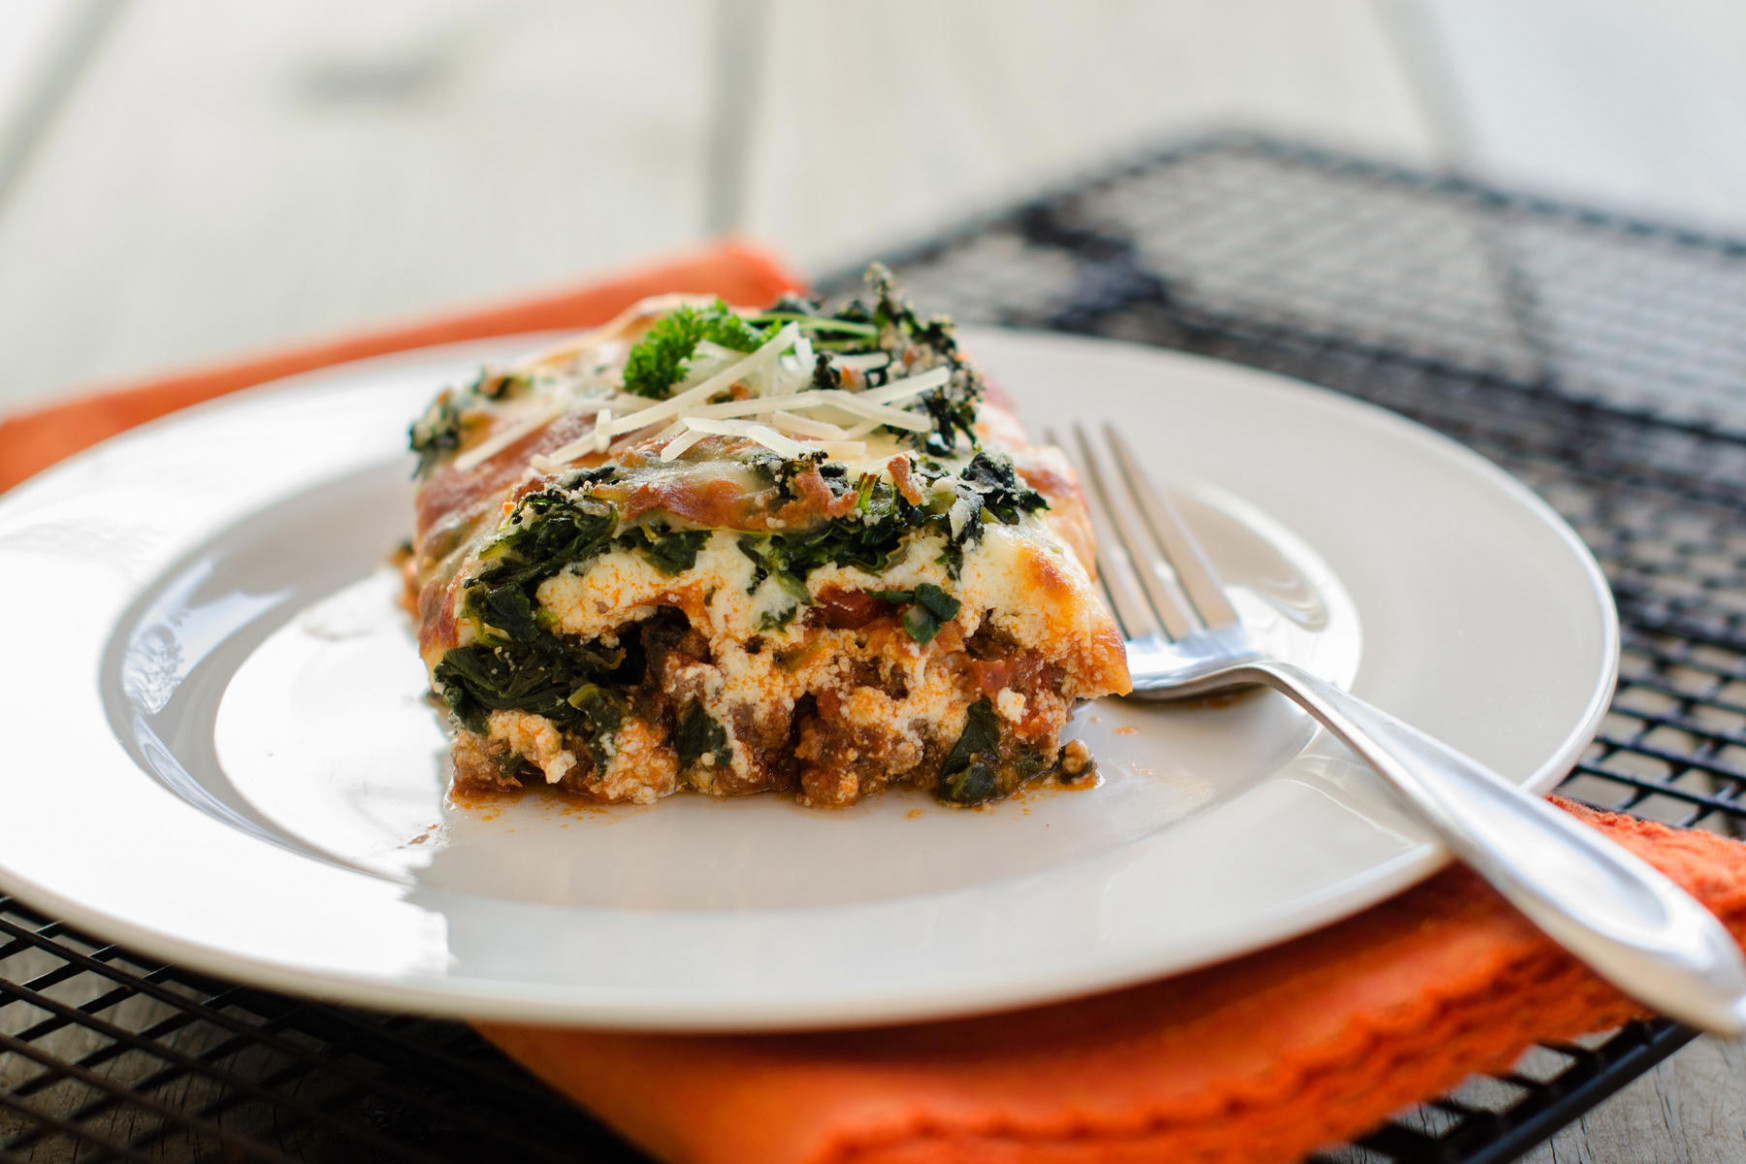 Lazy Lasagna Recipe From the Trim Healthy Mamas | Parents - recipes trim healthy mama